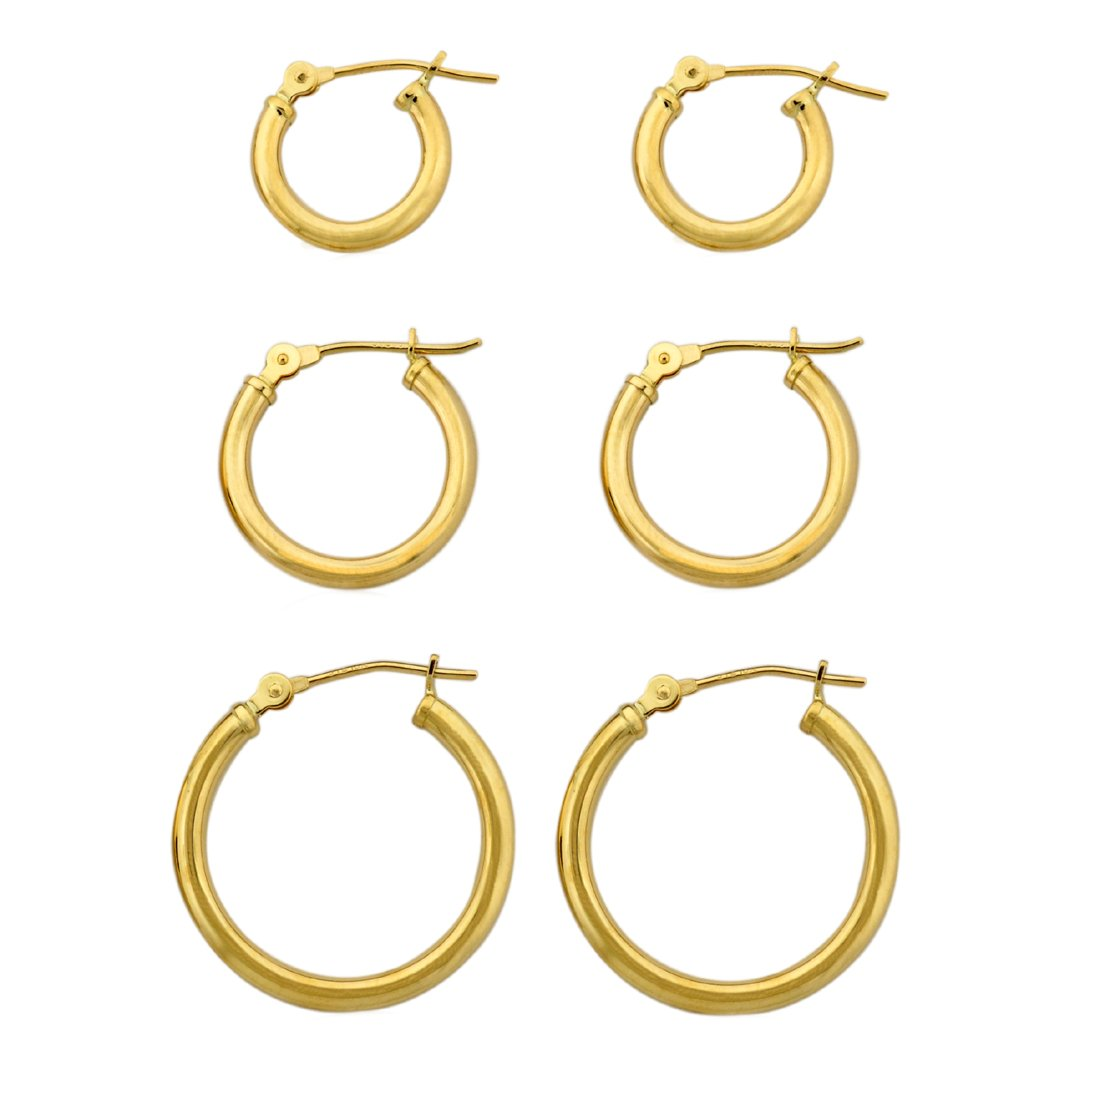 3 Pairs-10k Yellow Gold Polished Tube Clip Hoop Earrings Set